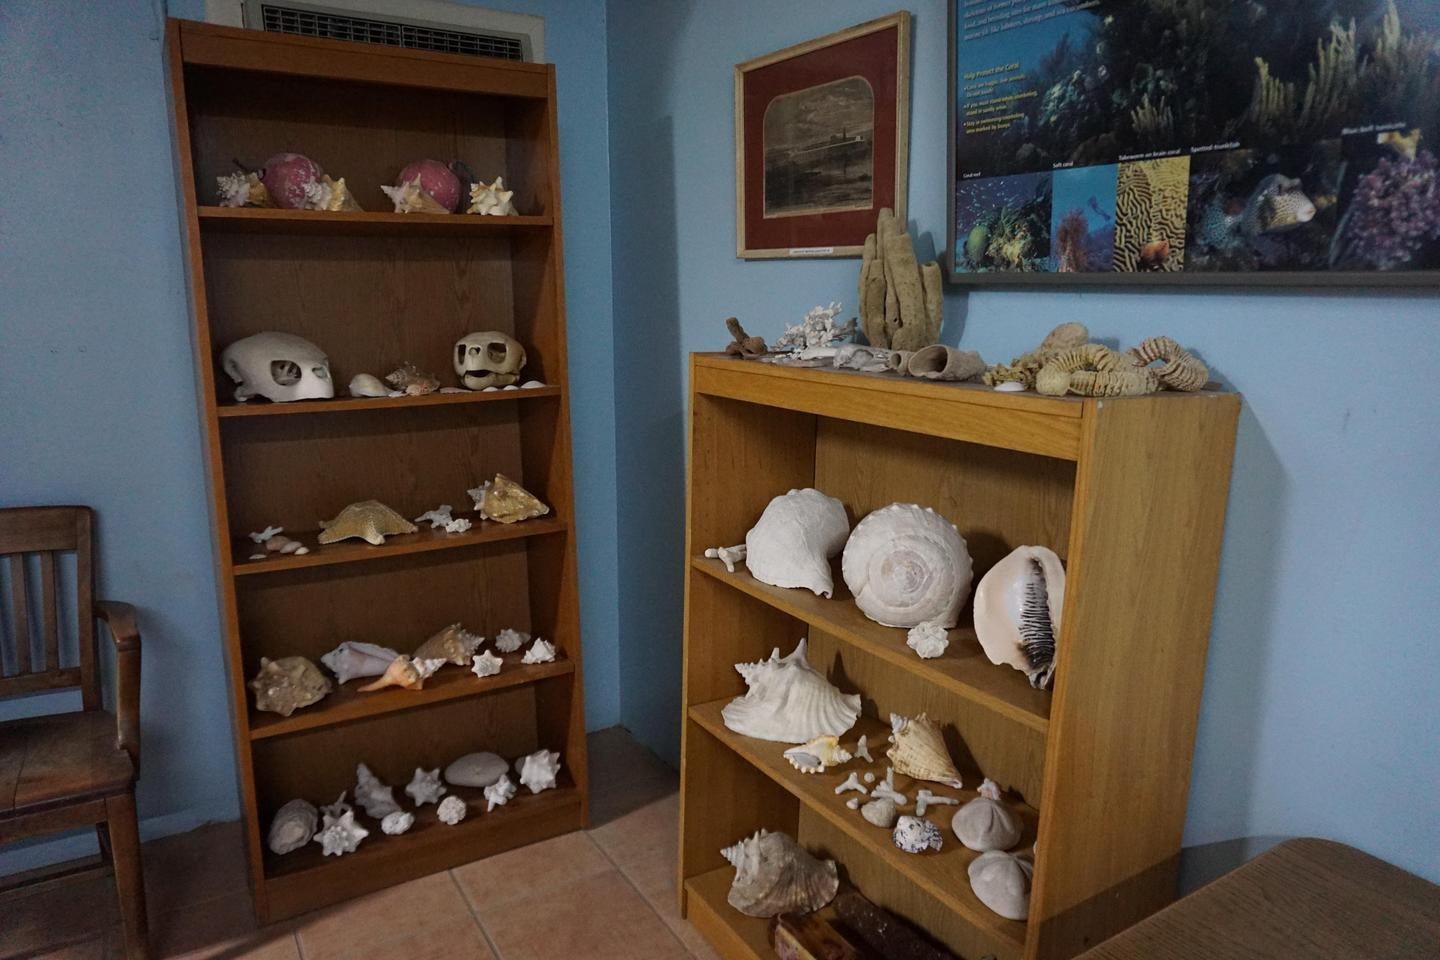 Garden Key VC Bookcase DisplayDisplay cases in the Garden Key Visitor Center highlight sea artifacts